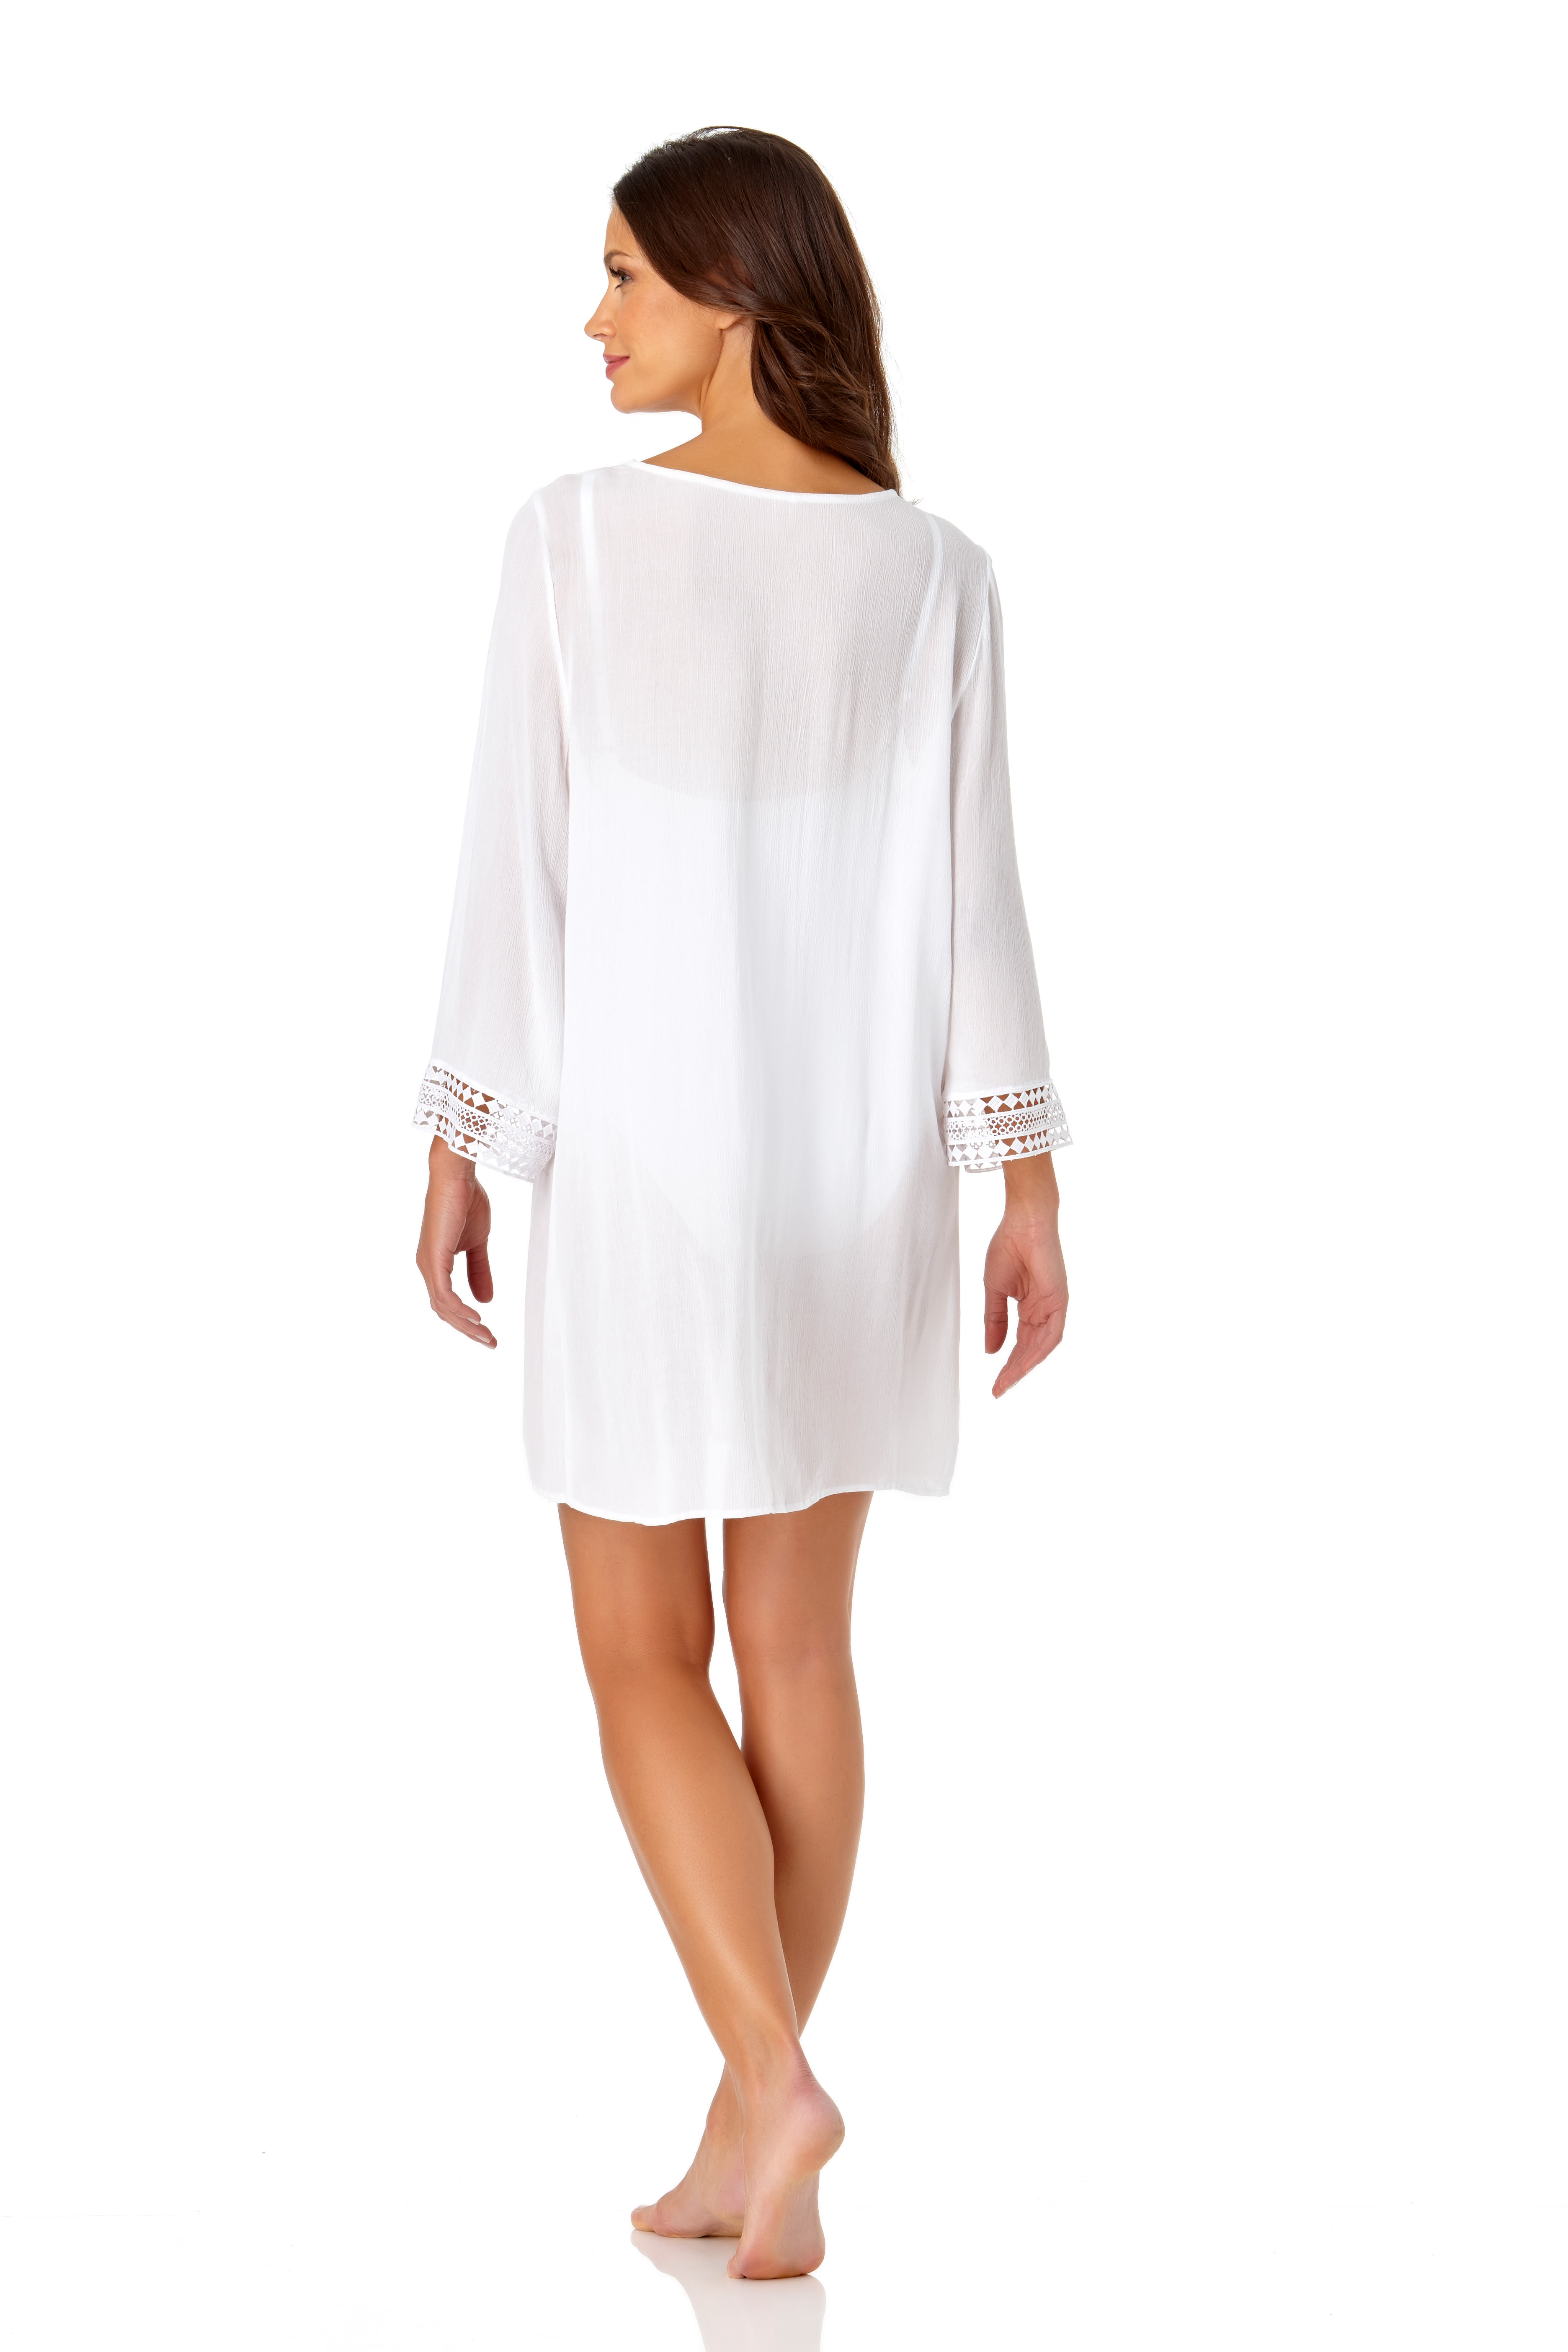 Anne Cole® Crochet Mixer Swimsuit Cover-Up - White - Back